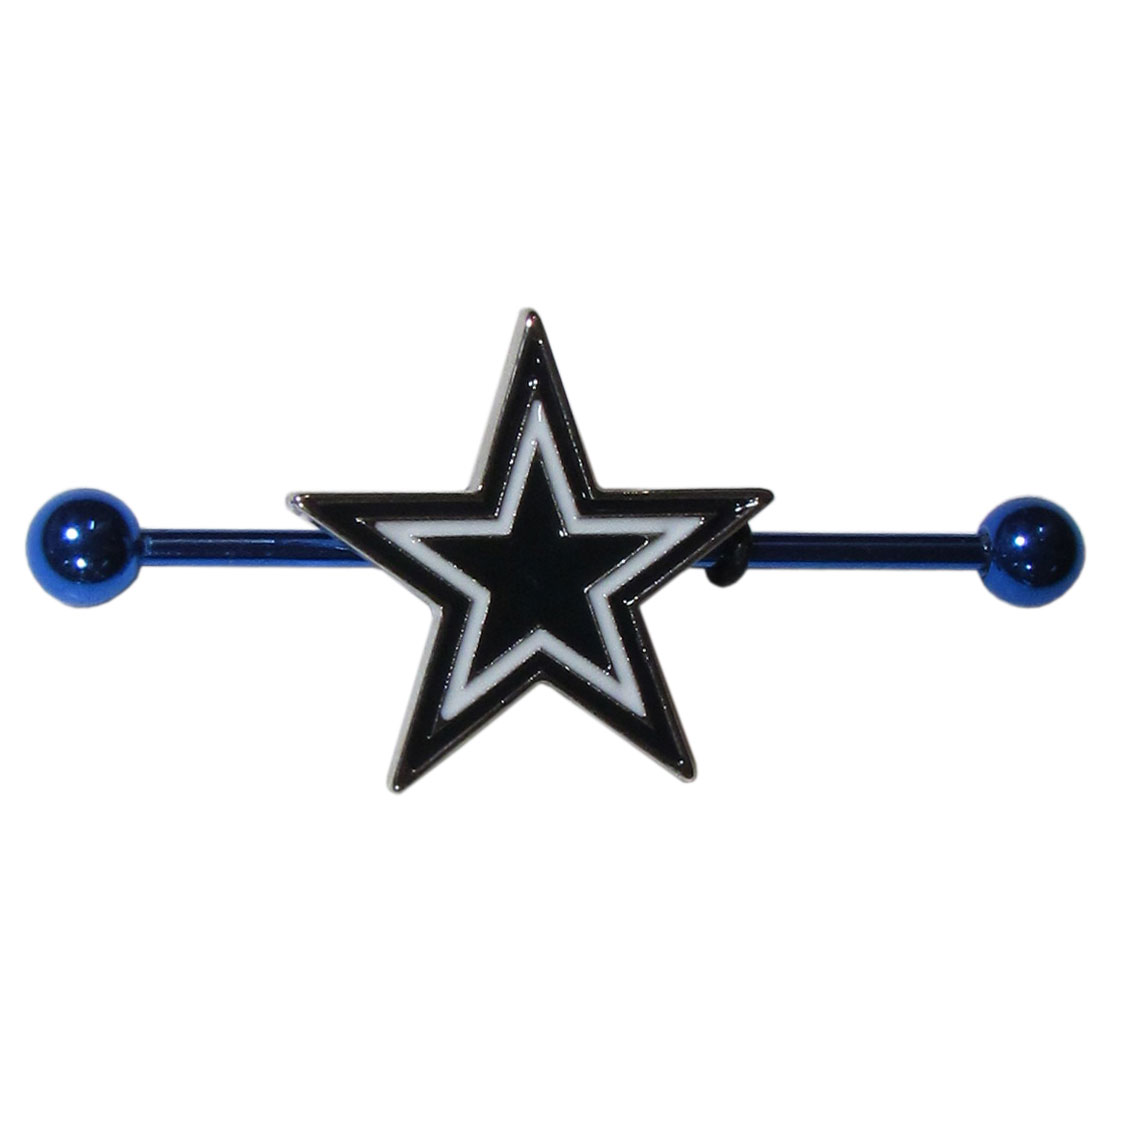 Dallas Cowboys Industrial Slider Barbell - Show off your love of the game with this officially licensed.Dallas Cowboys industrial slider barbell. The 40mm barbell features an expertly designed team slider charm